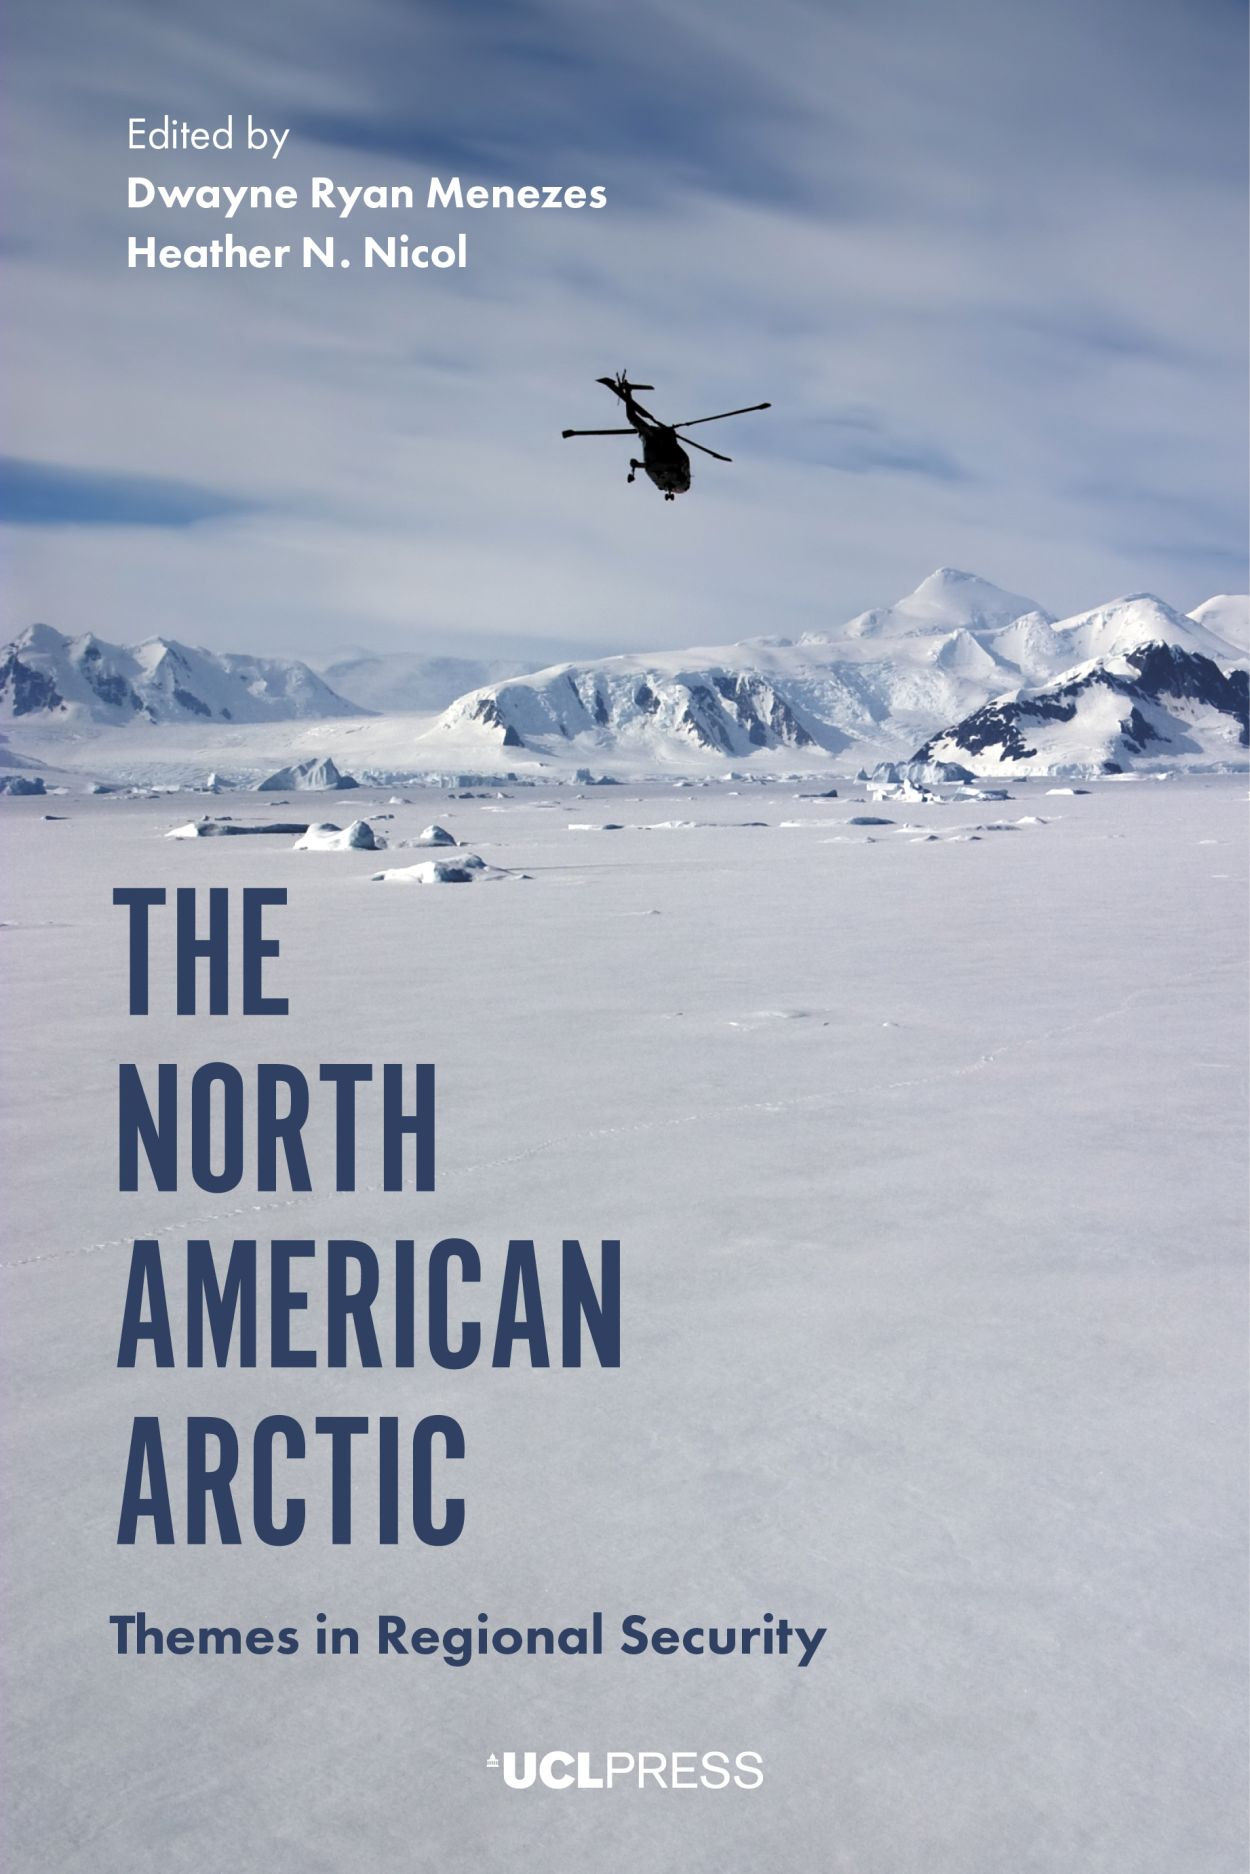 The North American Arctic